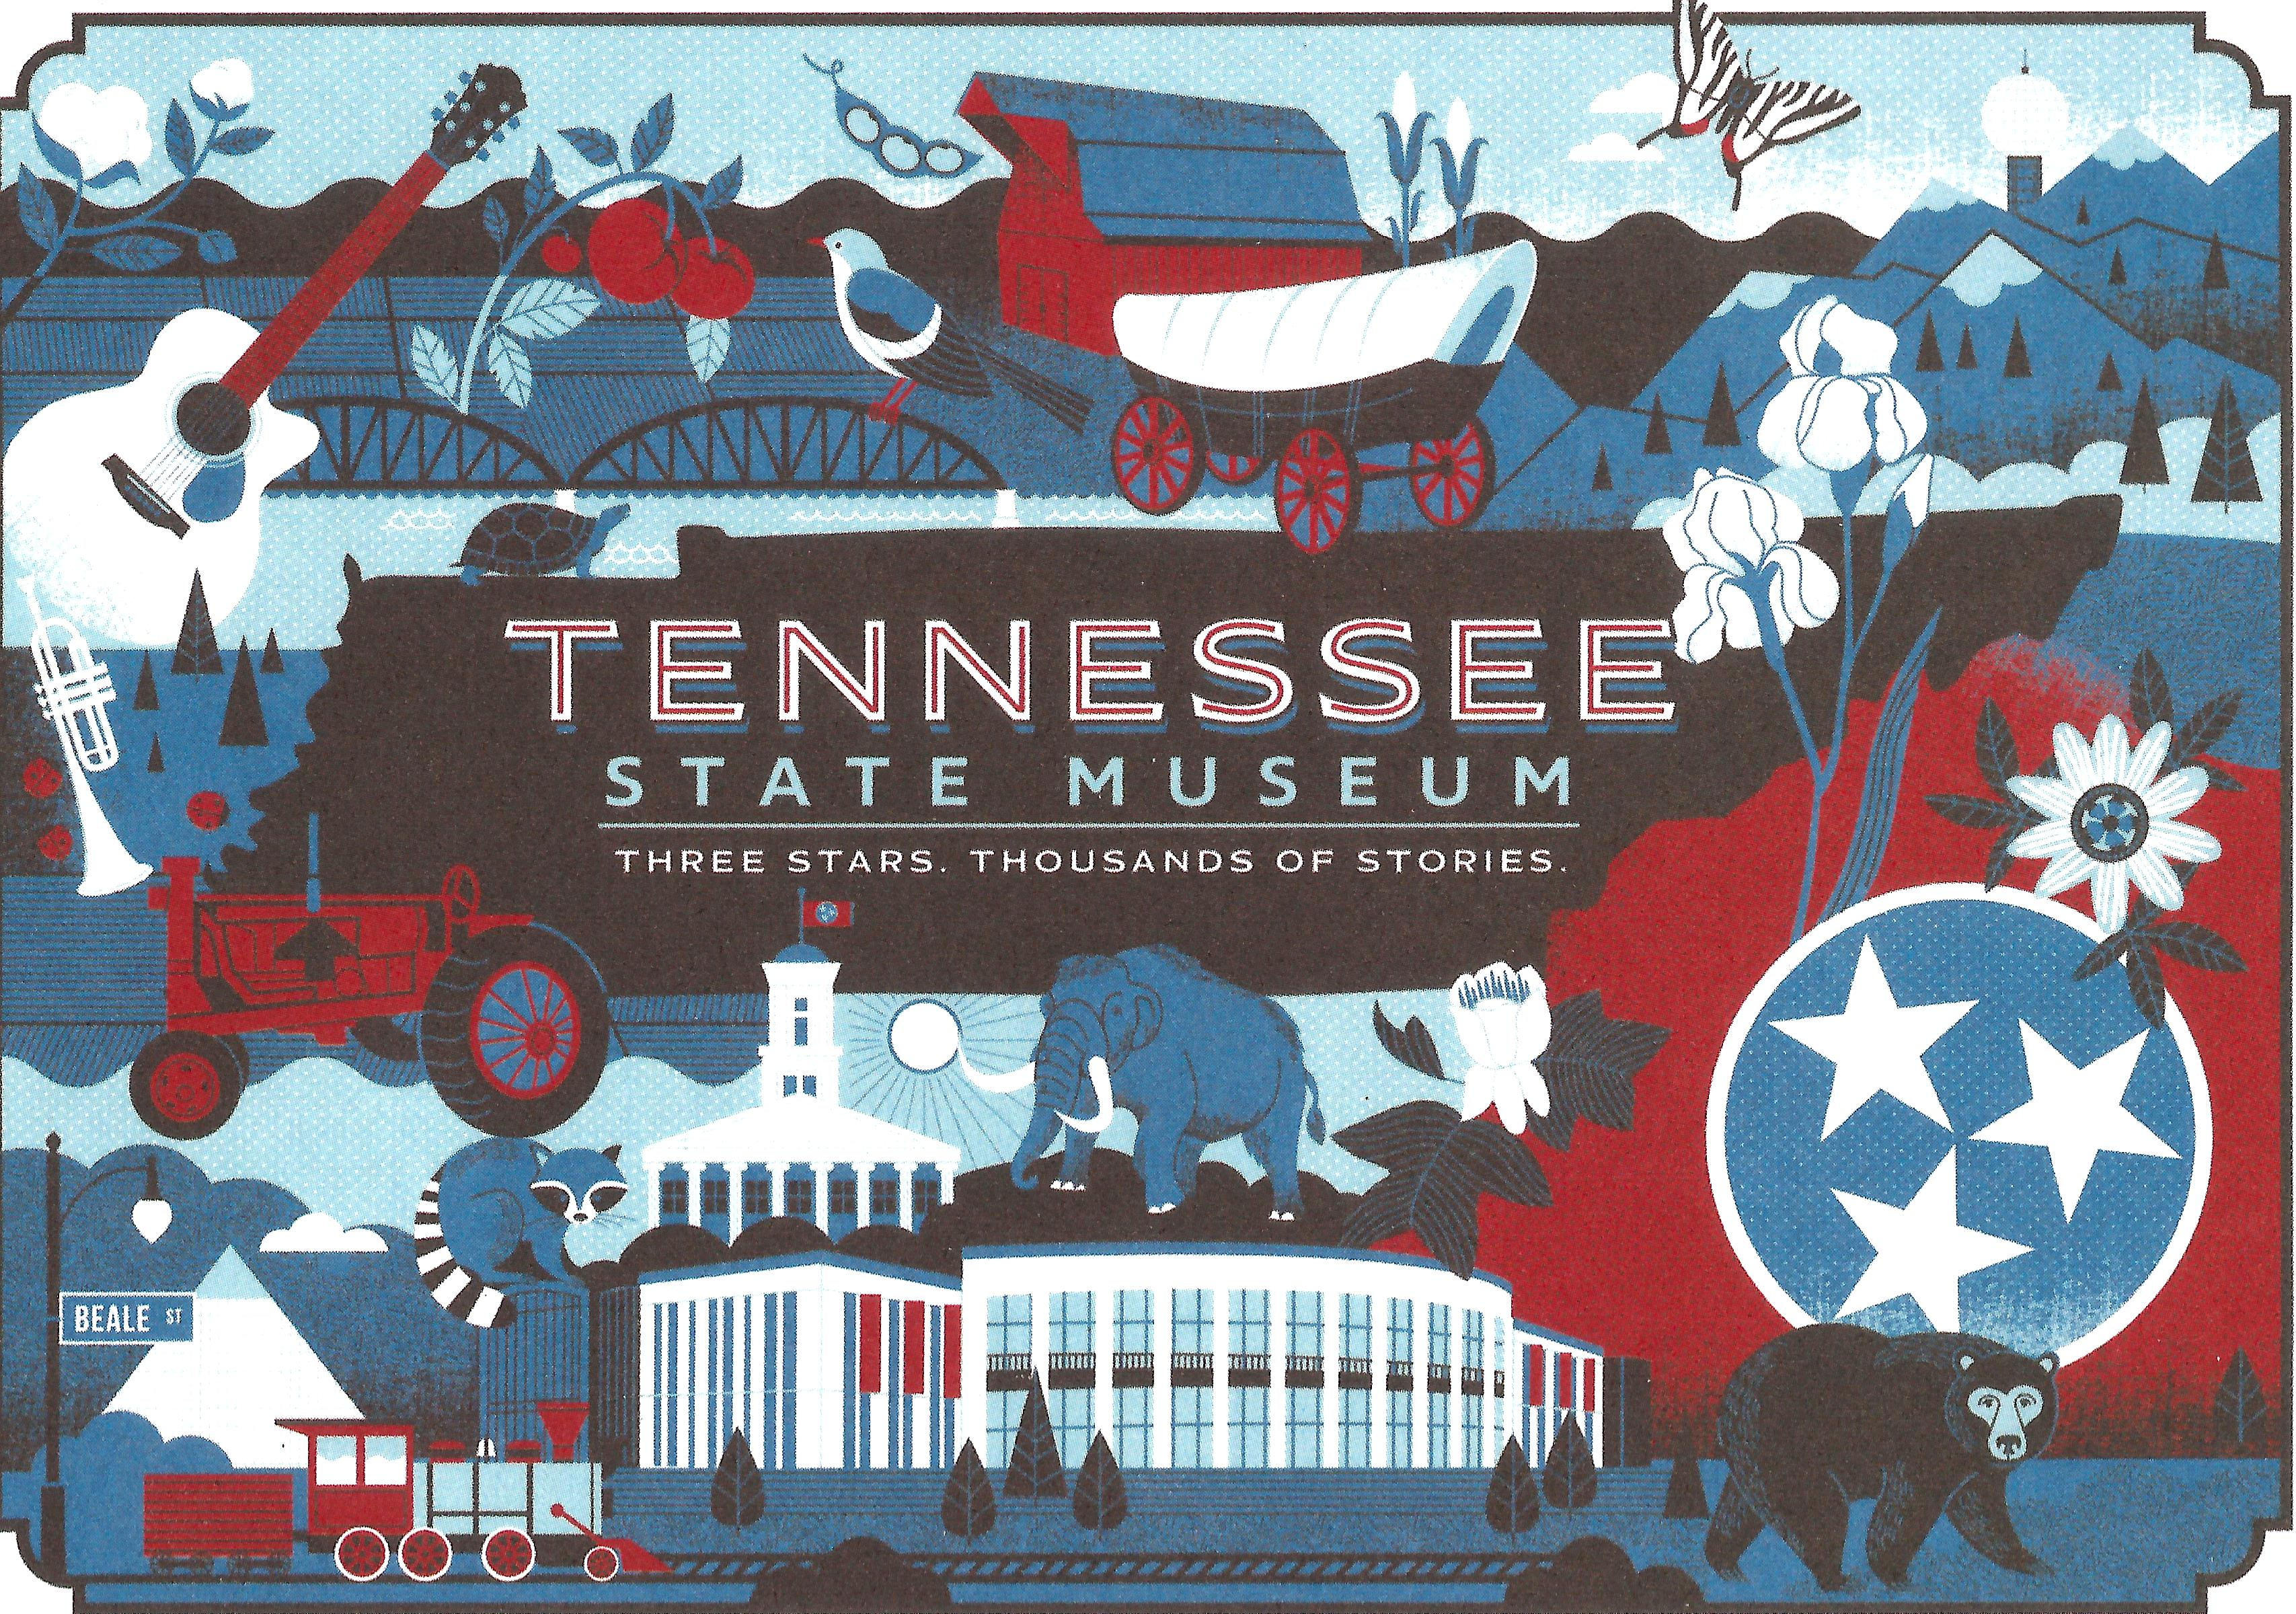 Tennessee State Museum